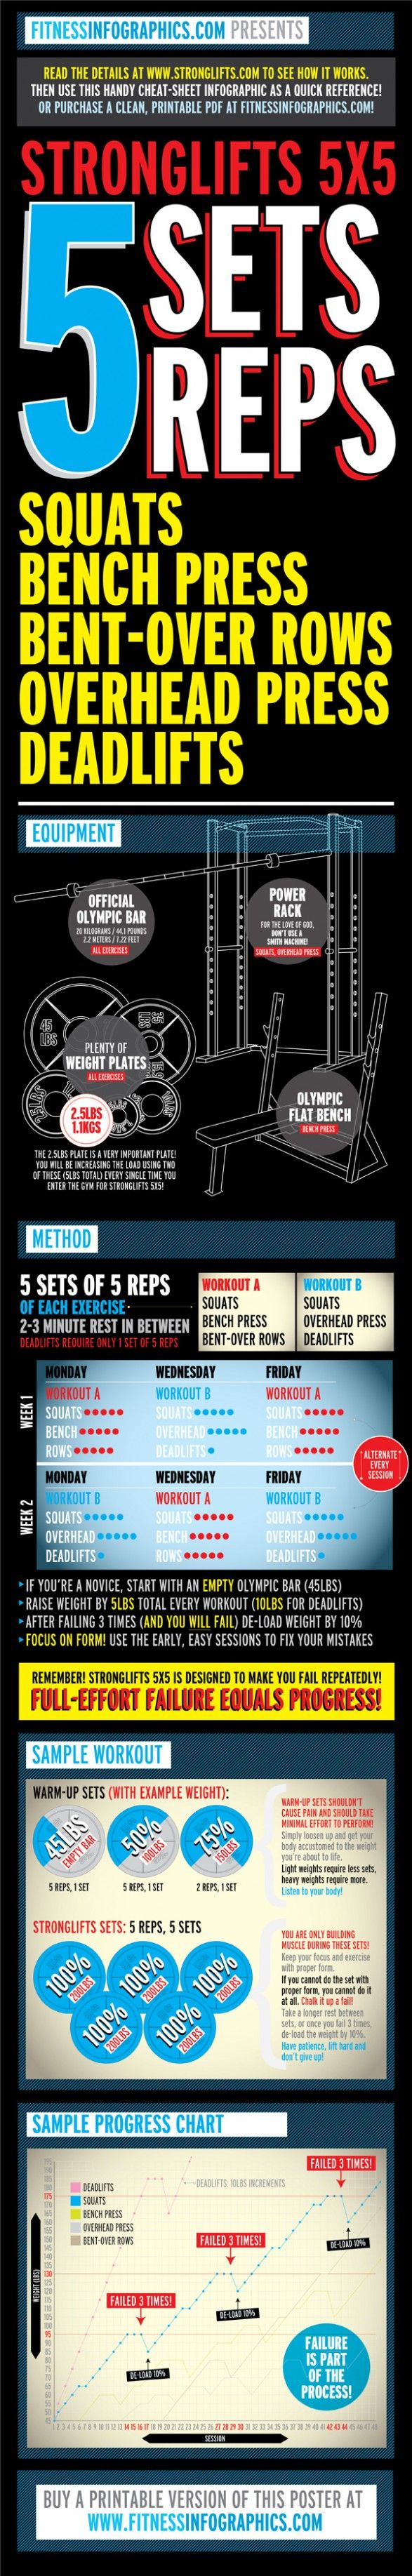 Stronglifts 5x5 | Strong lifts 5x5 | Pinterest